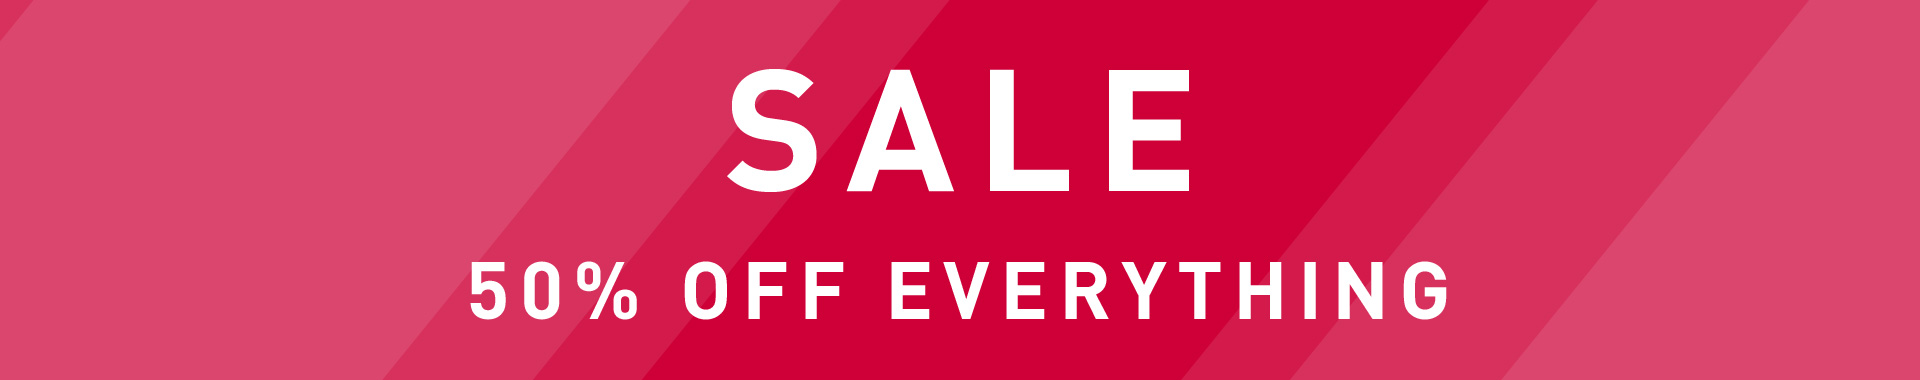 Sale -50% off everything